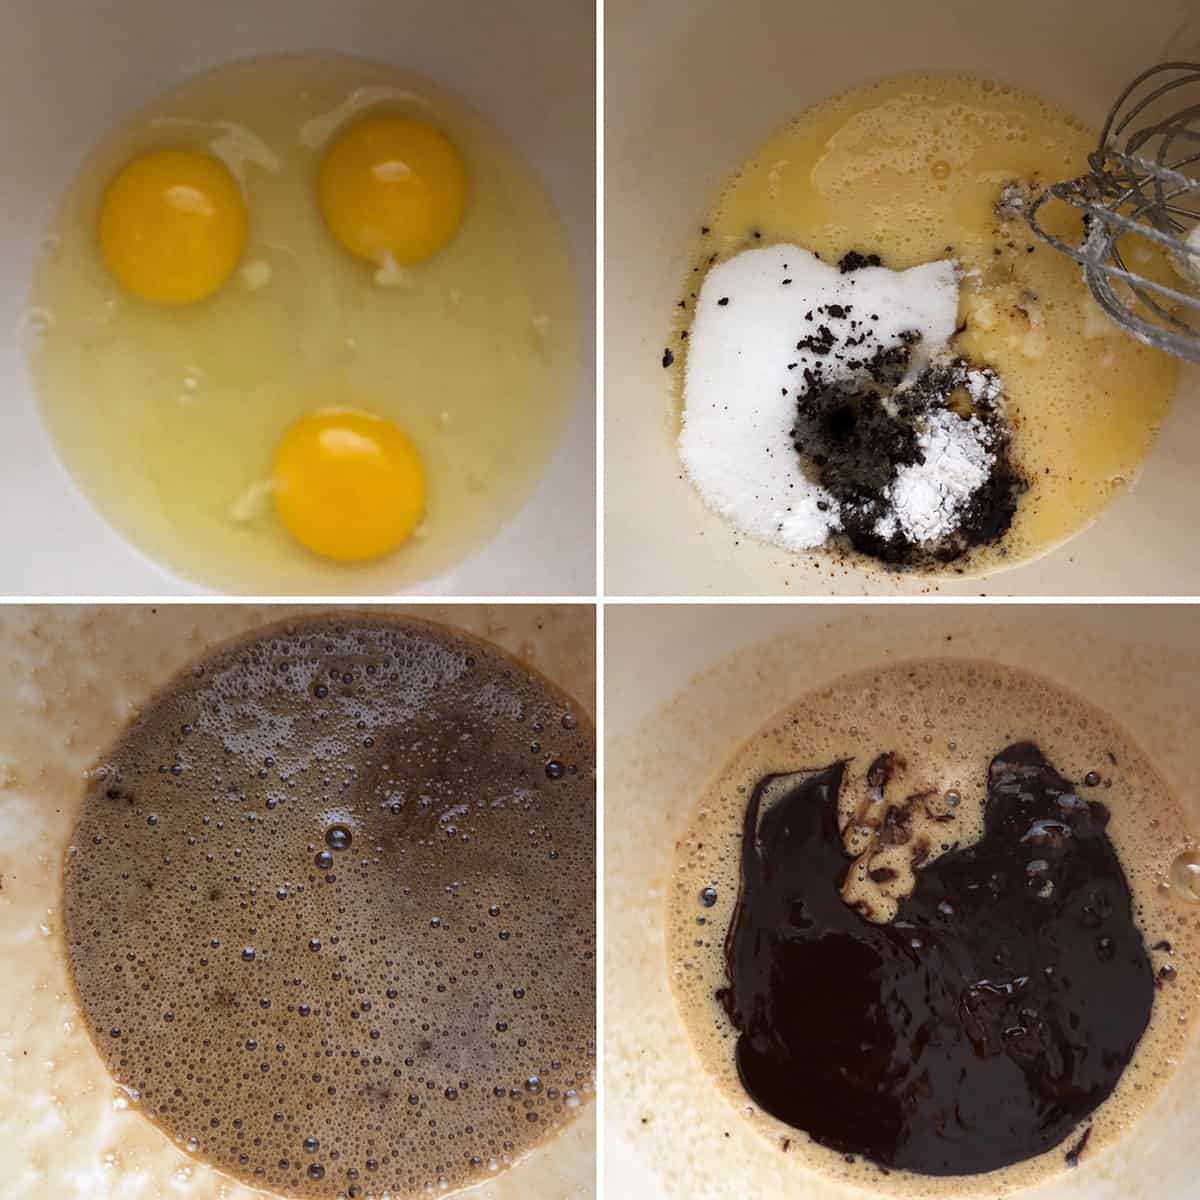 Step by step photos showing mixing wet ingredients to make the crinkle cookies